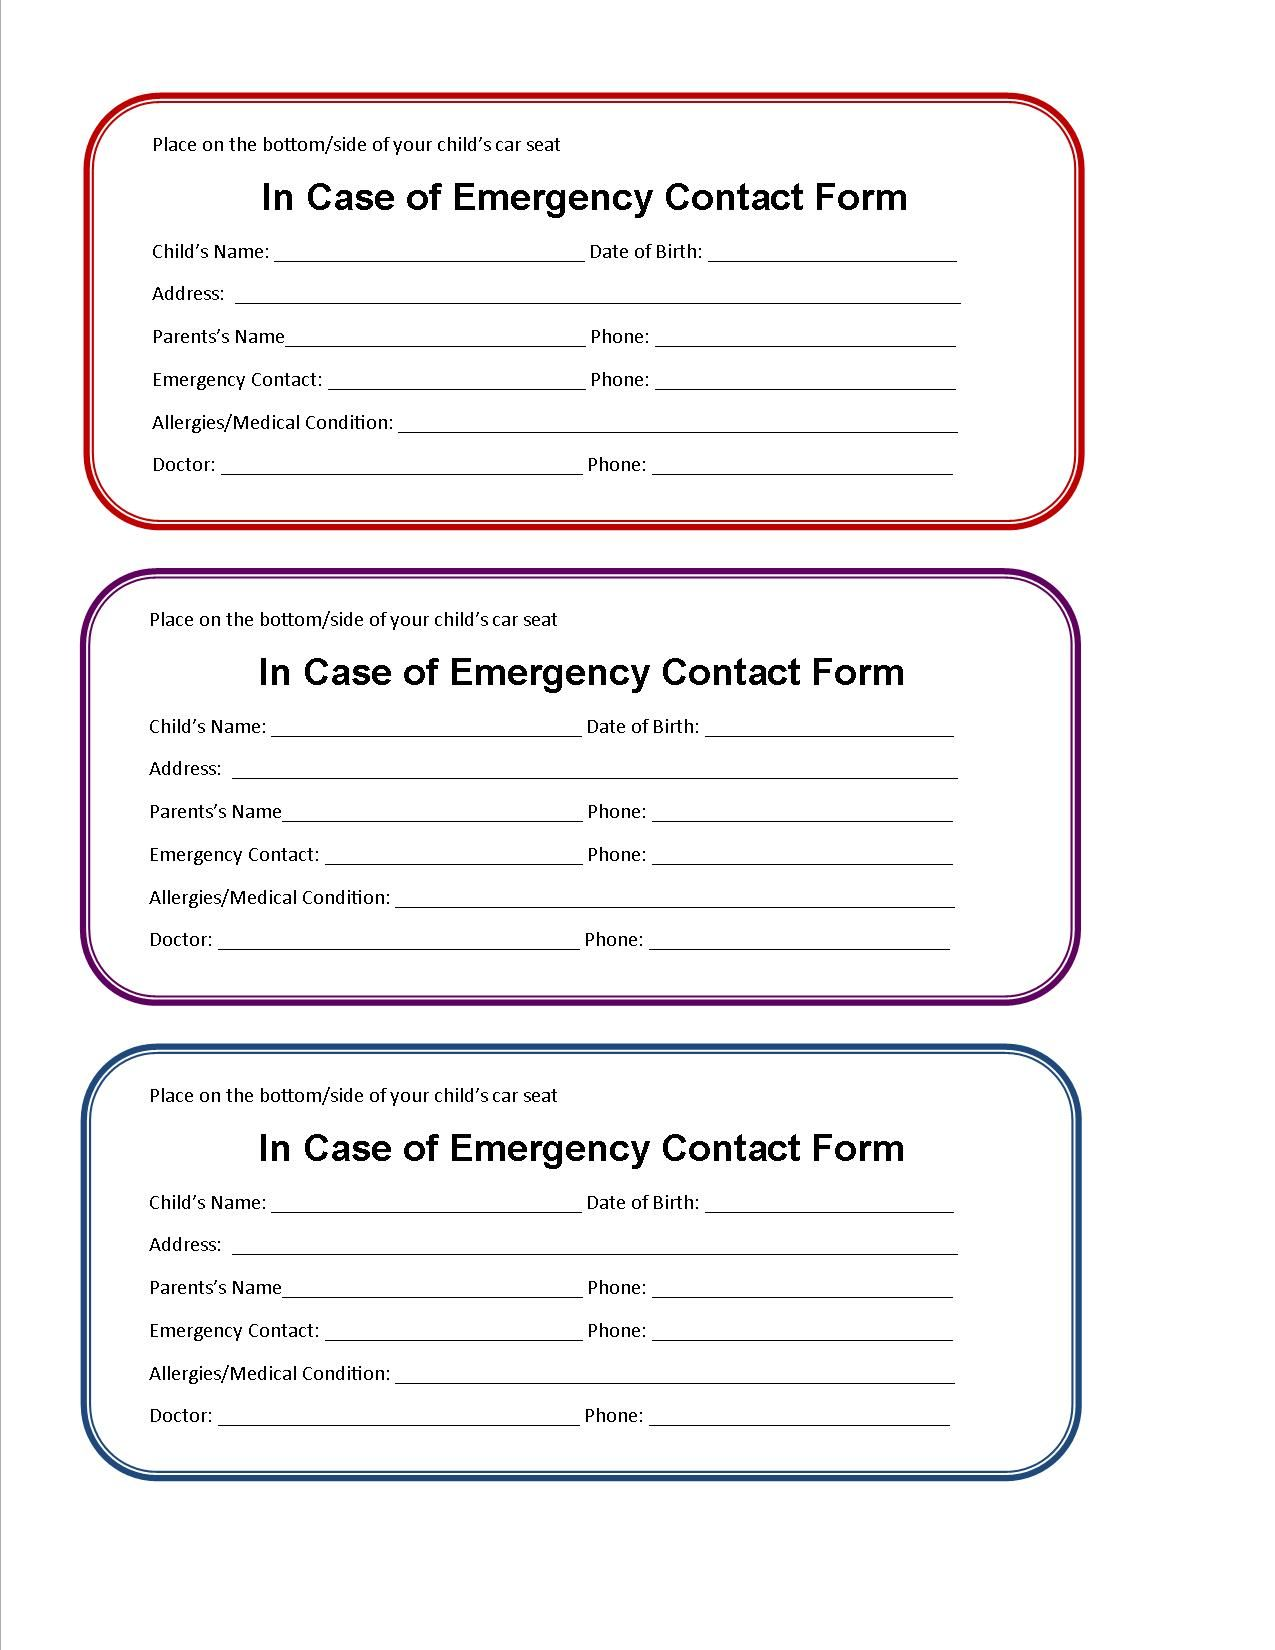 Printable Emergency Contact Form for Car Seat | Emergency